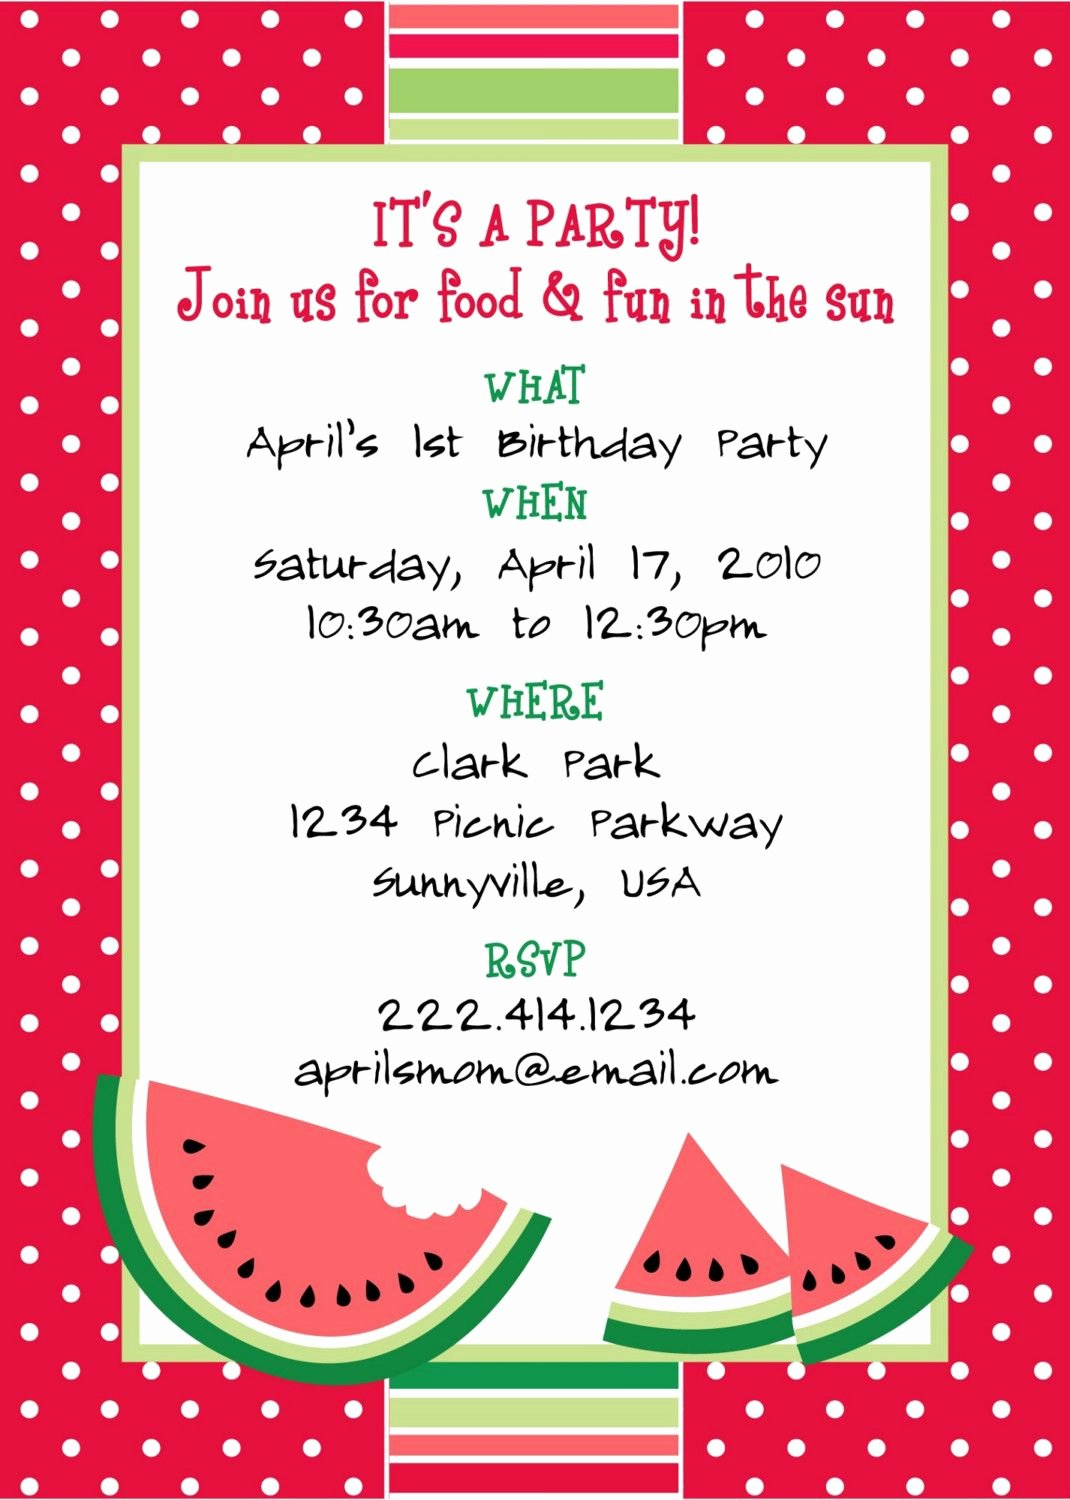 Free Picnic Invitation Template Fresh Picnic Invitations Pdf Invitation Templates He S 1 Pinterest